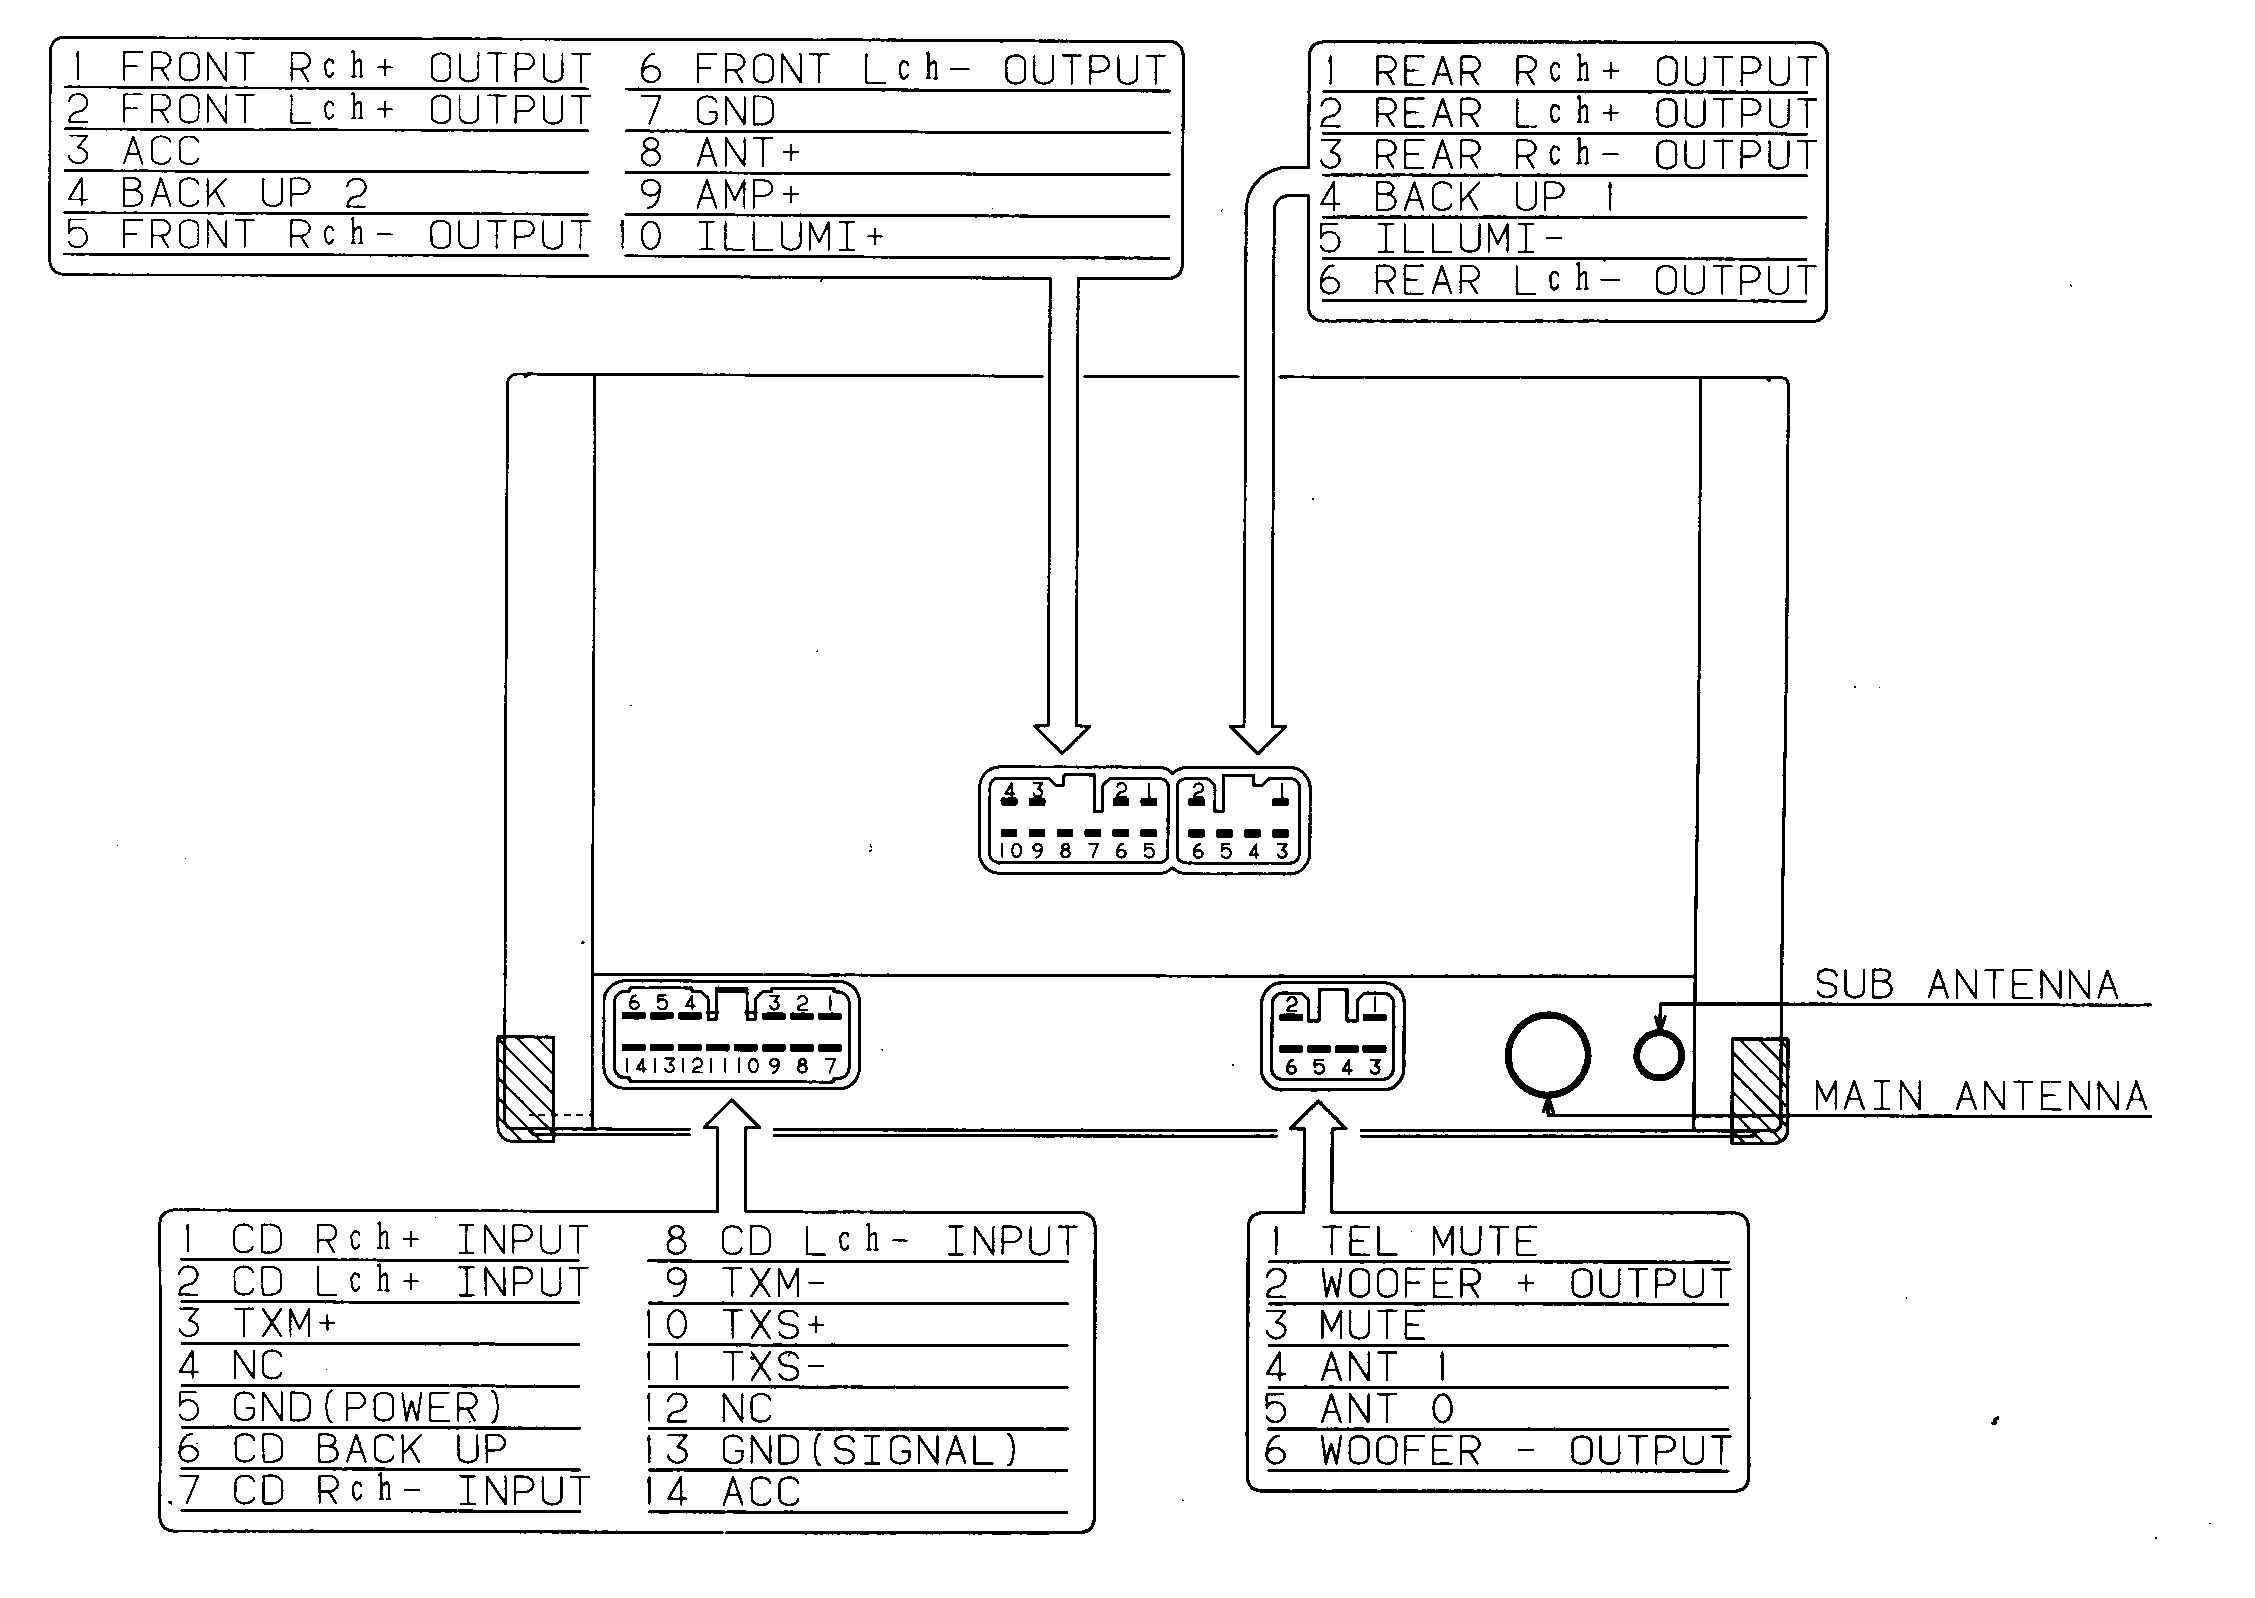 Toyota Fujitsu Ten 86120 Wiring Diagram Mv 8098] Radio Wiring Diagram Fujitsu Ten Wiring Diagram Of Toyota Fujitsu Ten 86120 Wiring Diagram